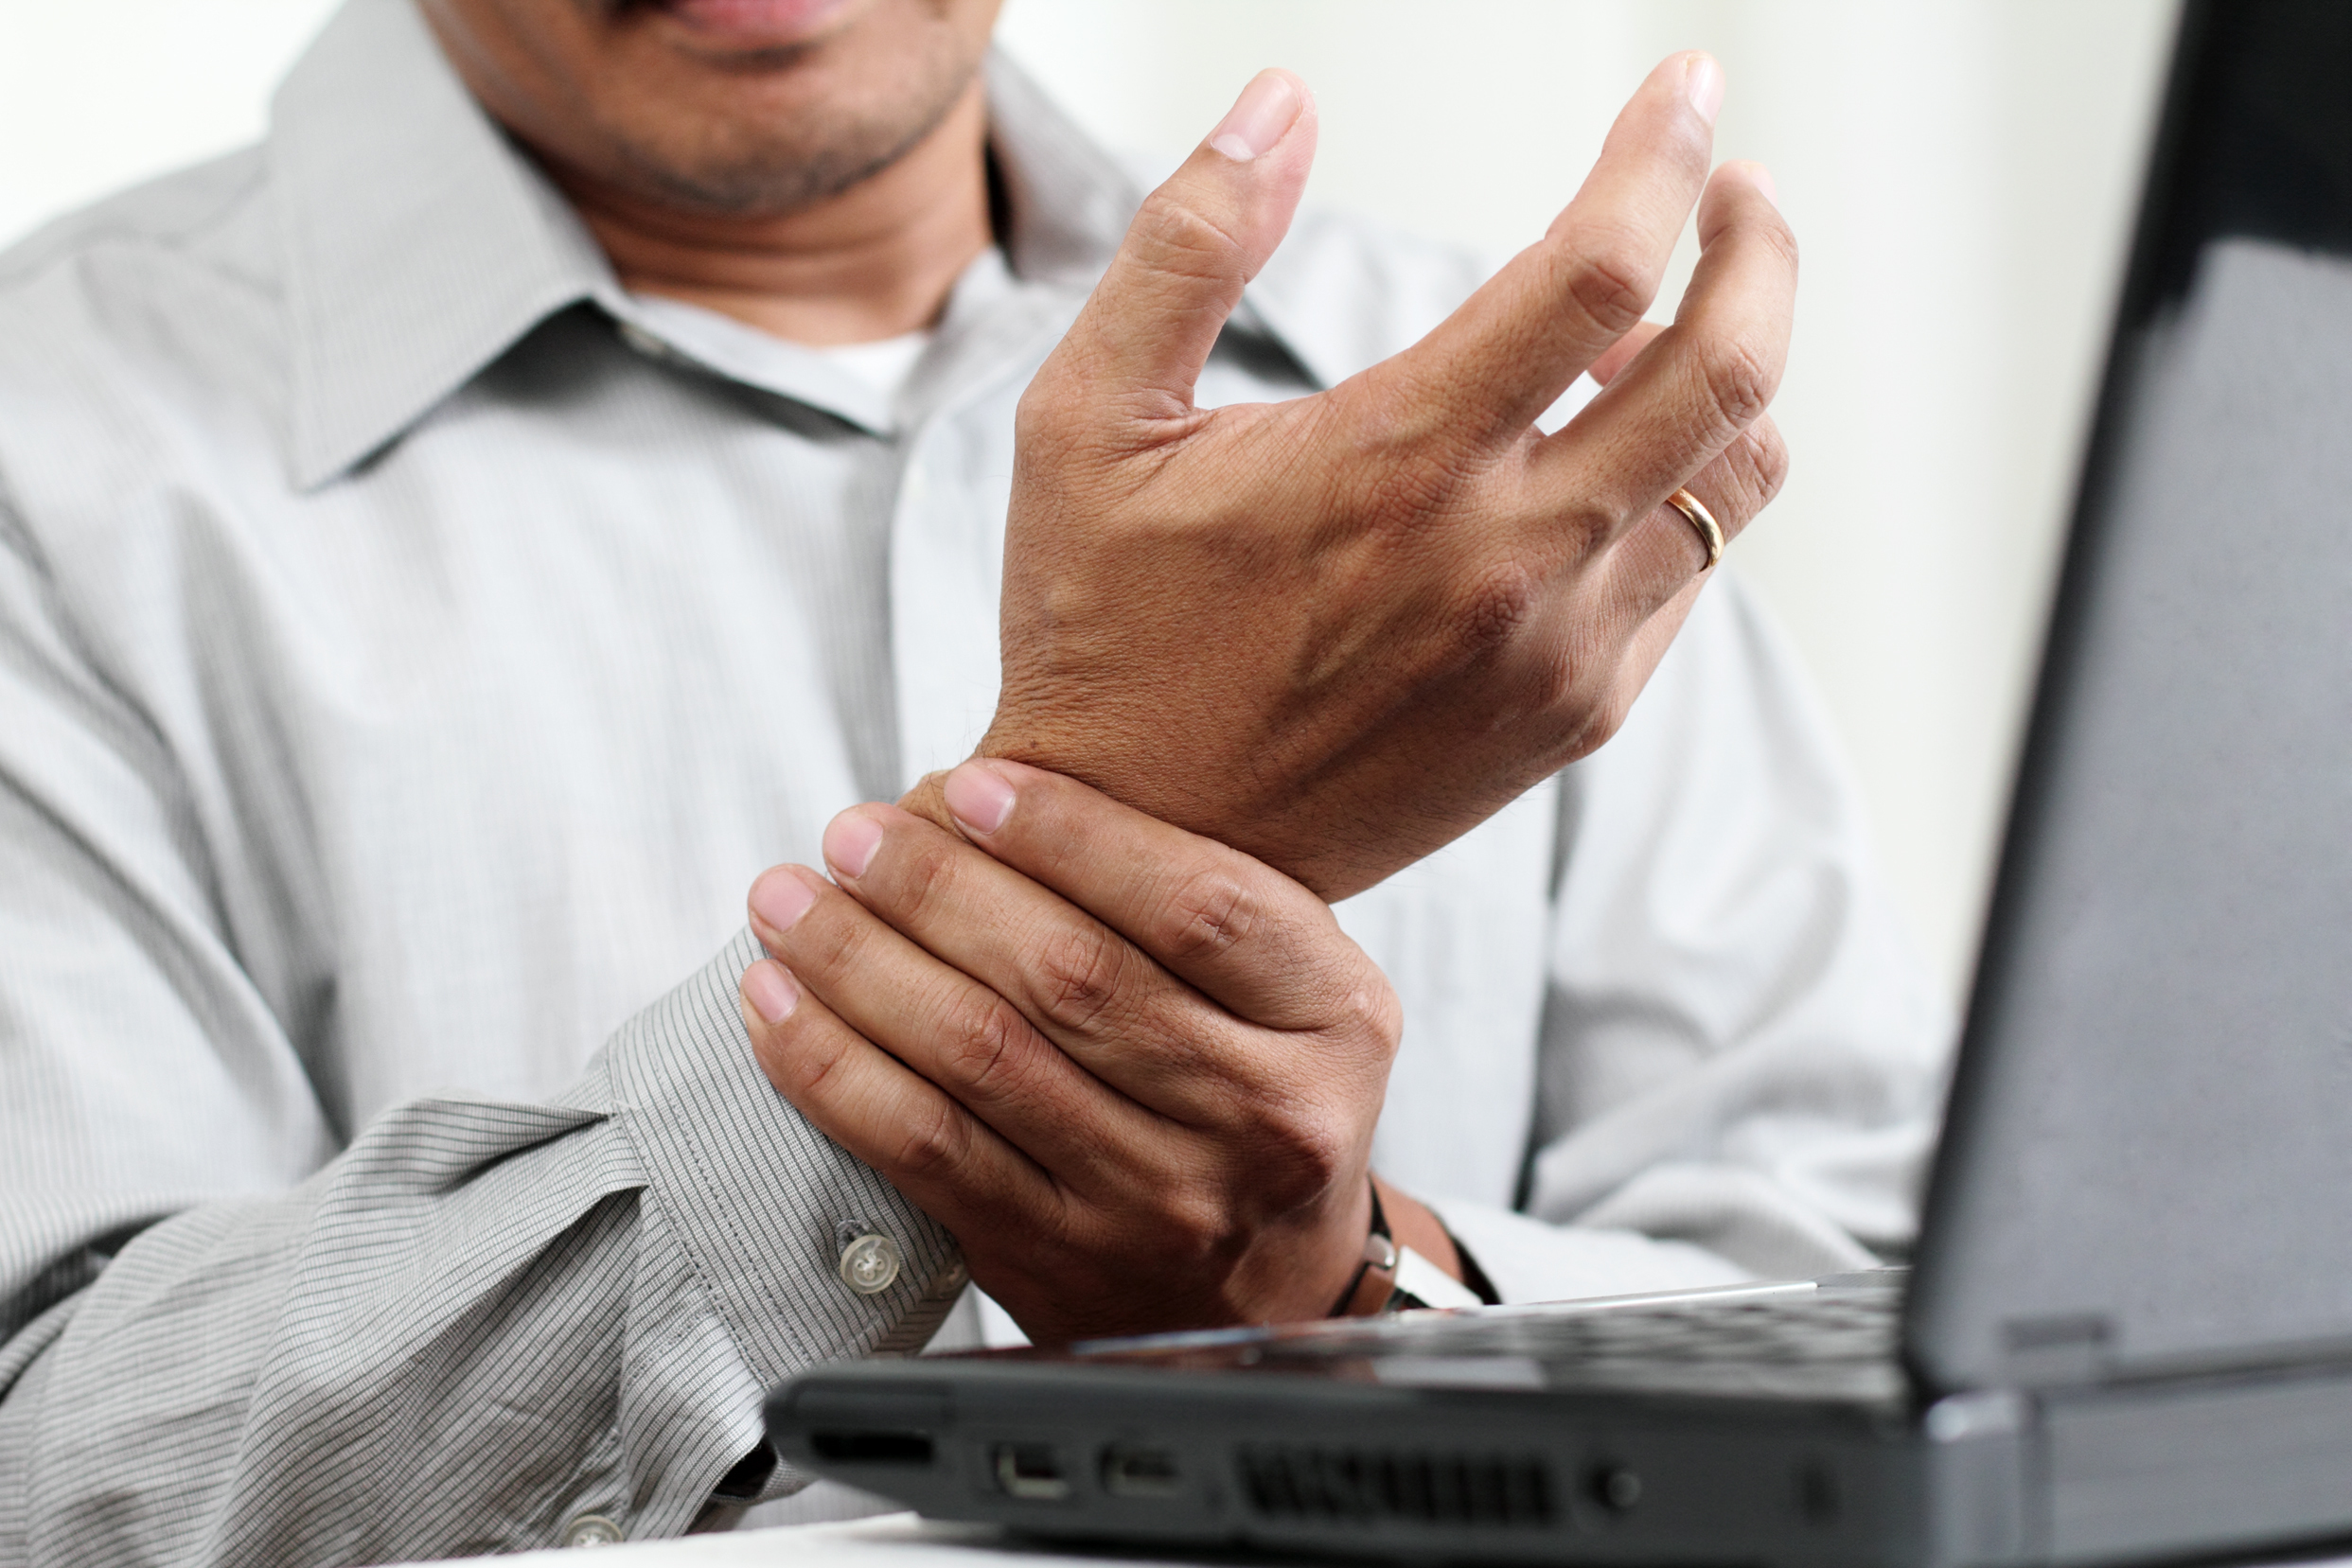 Carpal Tunnel Treatment from Your Sacramento Chiropractor, Anderson Chiropractic